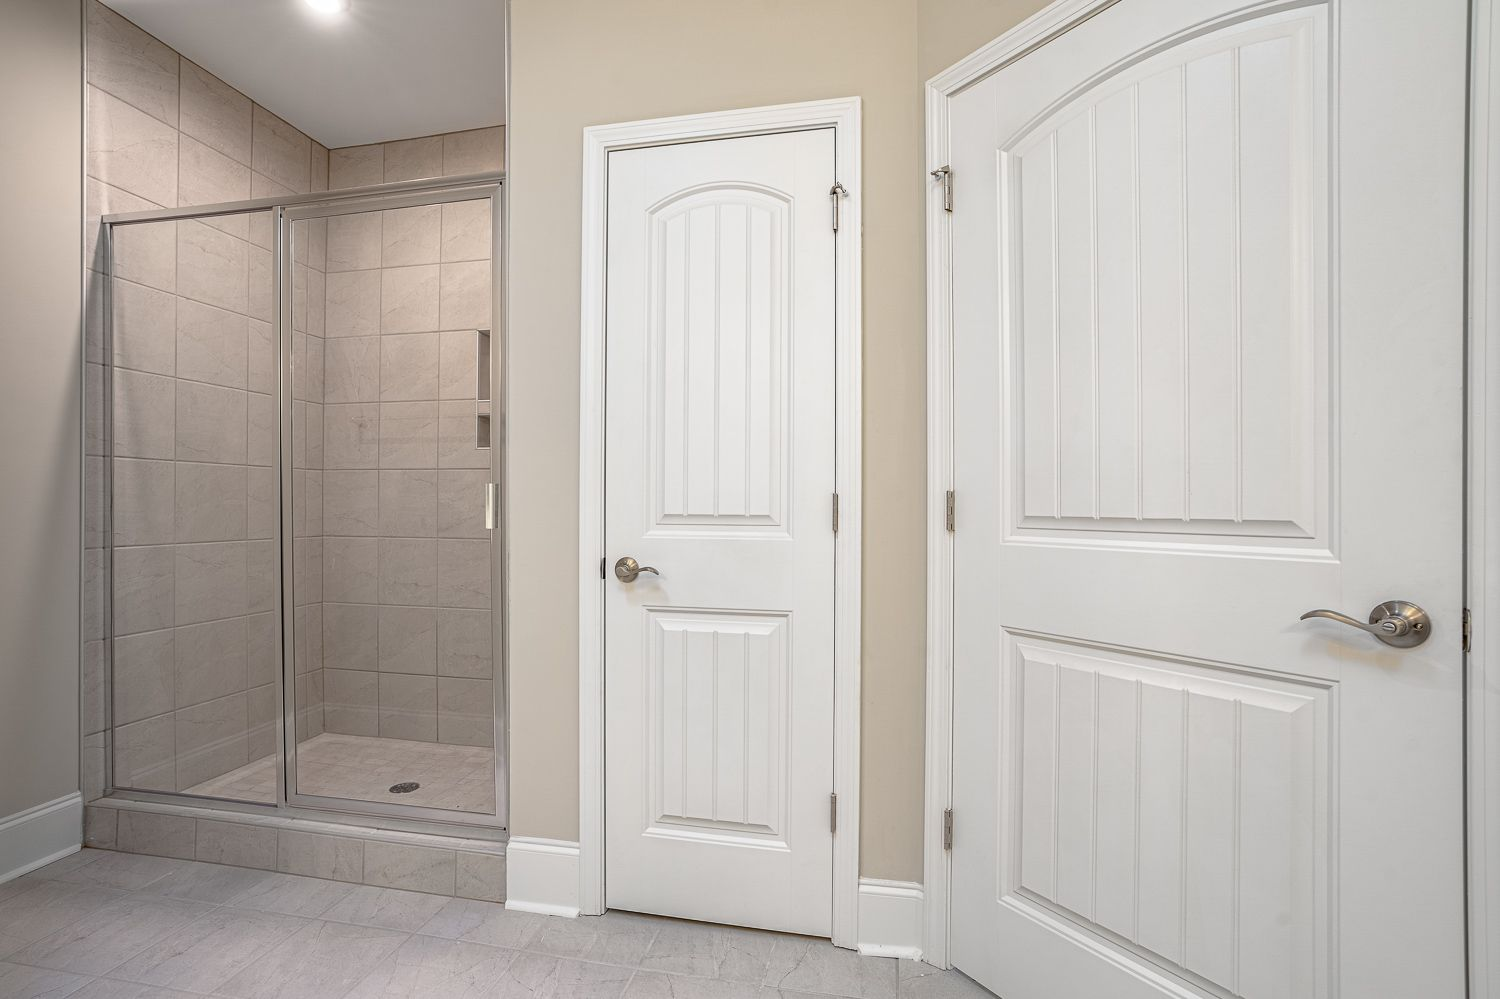 Bathroom featured in the Promenade Bungalow By McKee Homes in Wilmington, NC